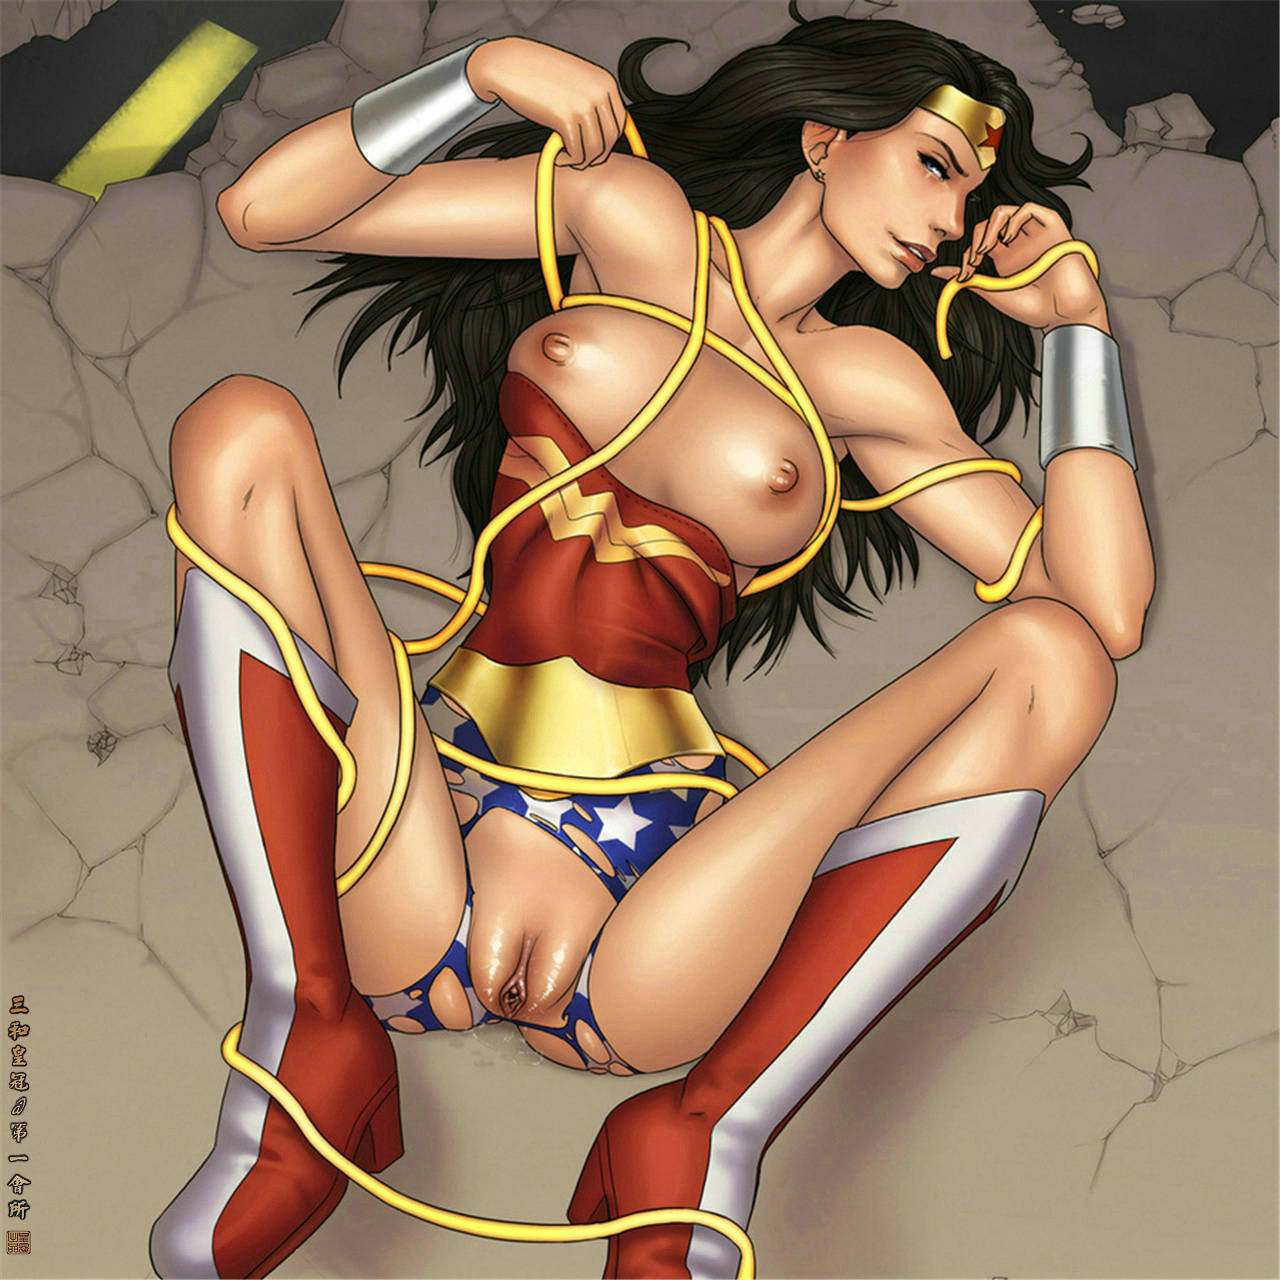 Wonder woman hentai pic nudes download